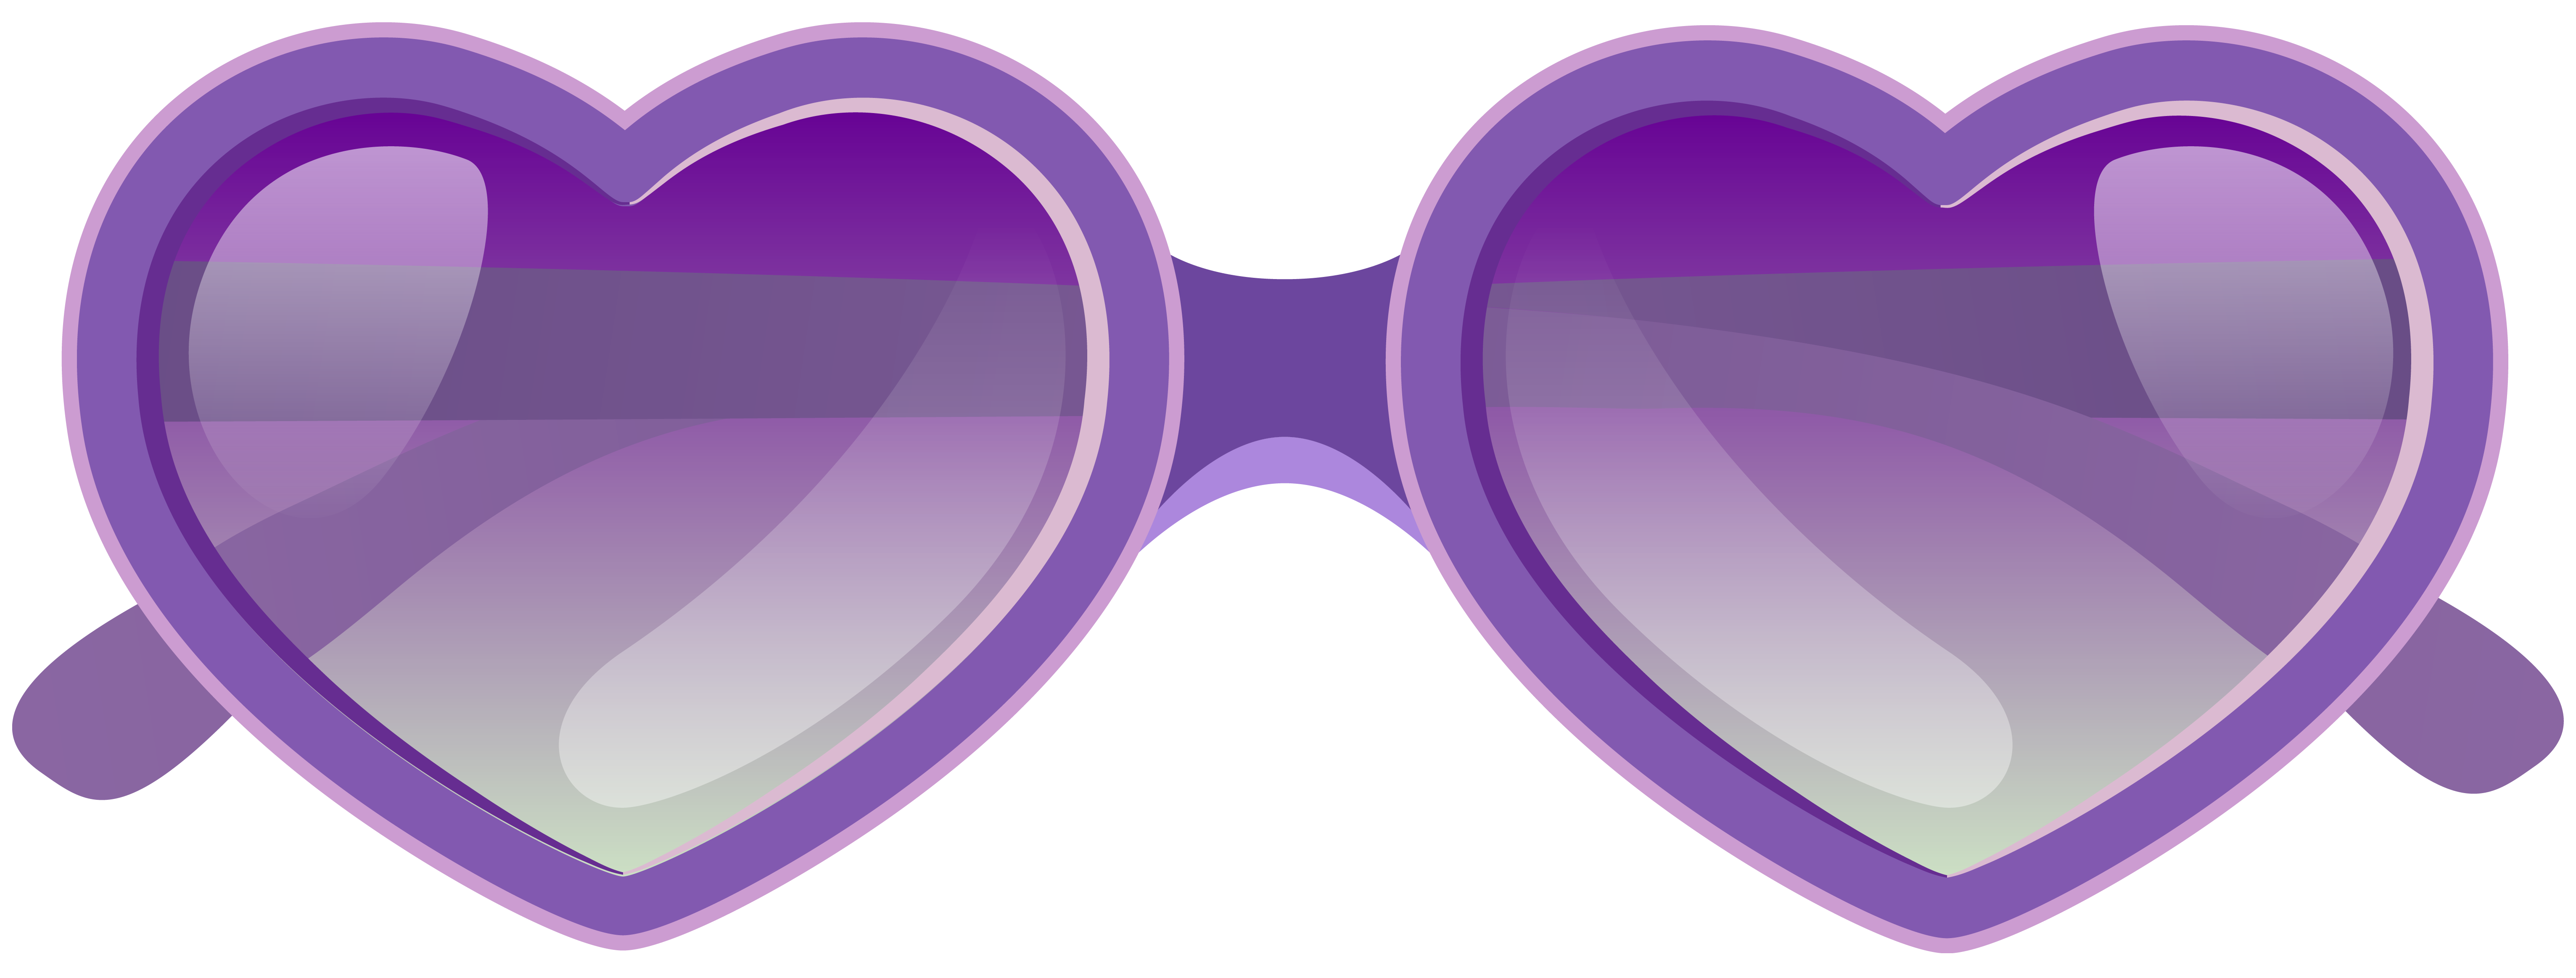 Purple heart sunglasses png. Goggles clipart vector graphic royalty free